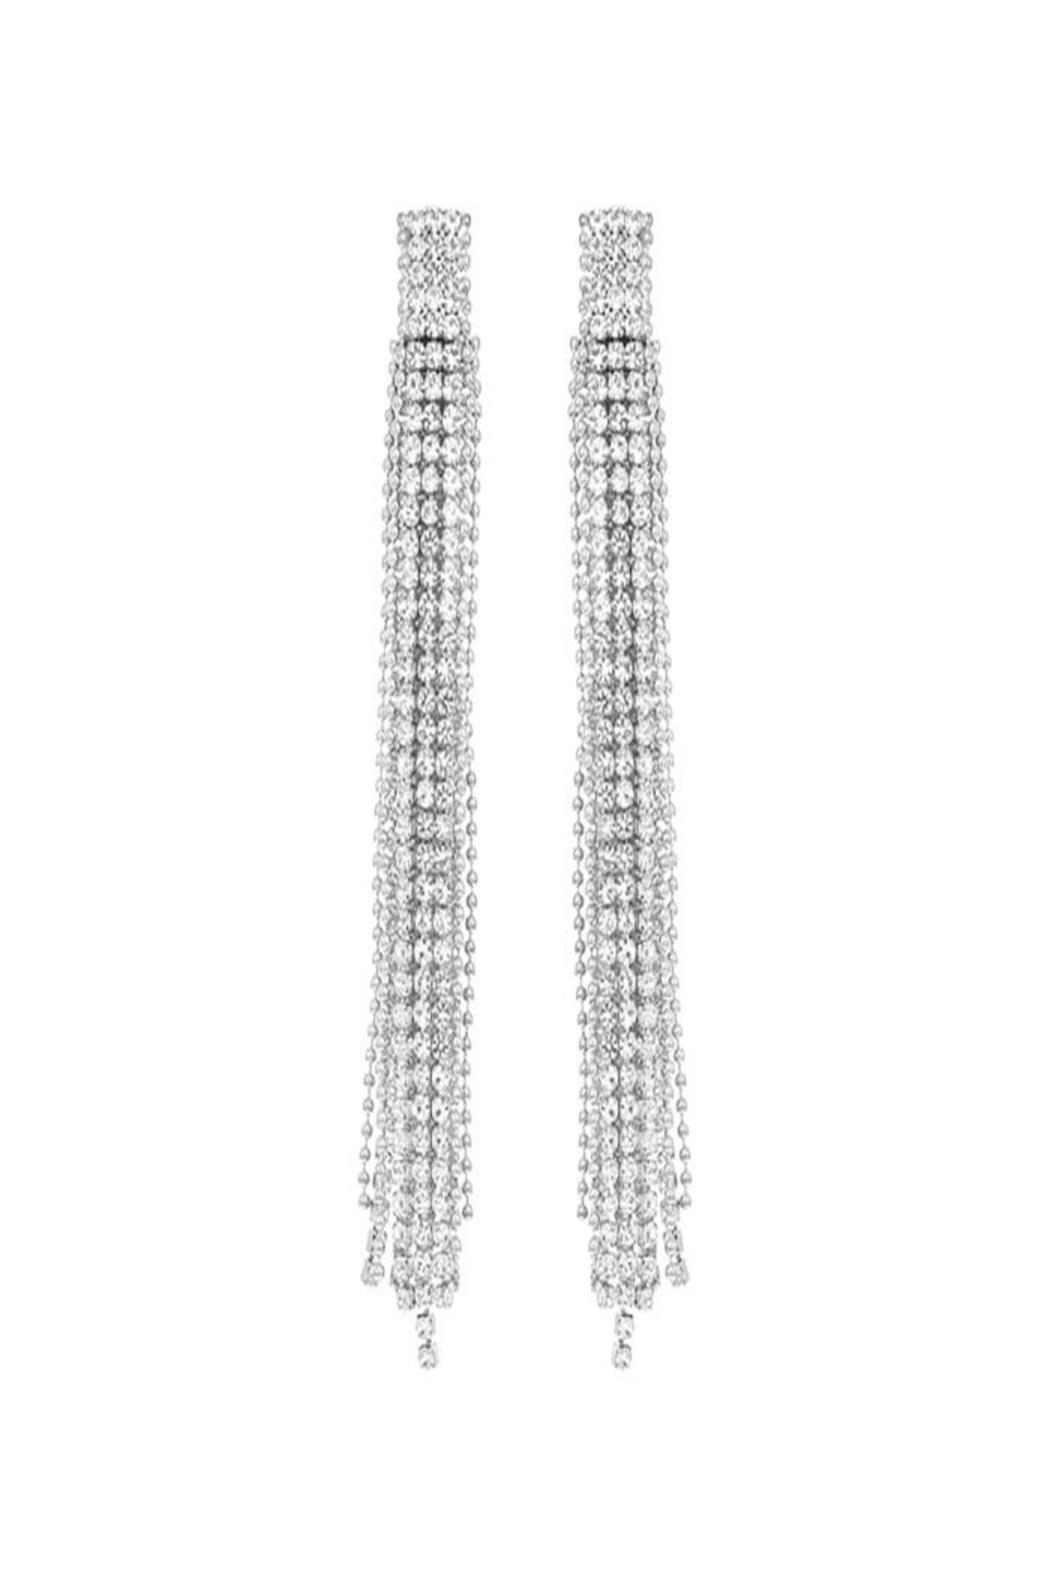 Nadya's Closet Beaded Rhinestone Earrings - Main Image